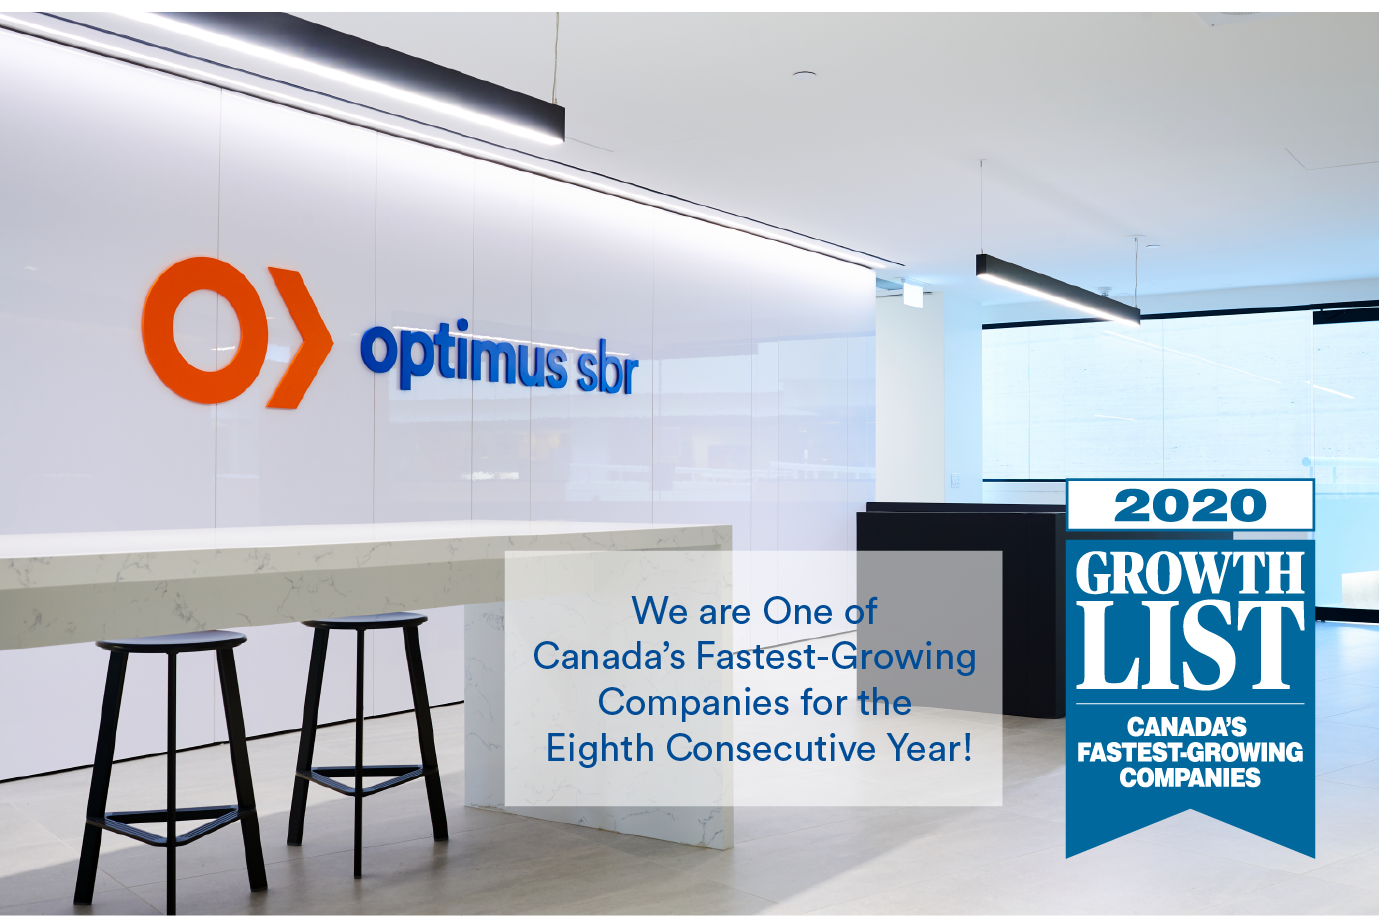 We are One of Canada's Fastest Growing Companies for the Eighth Consecutive Year!